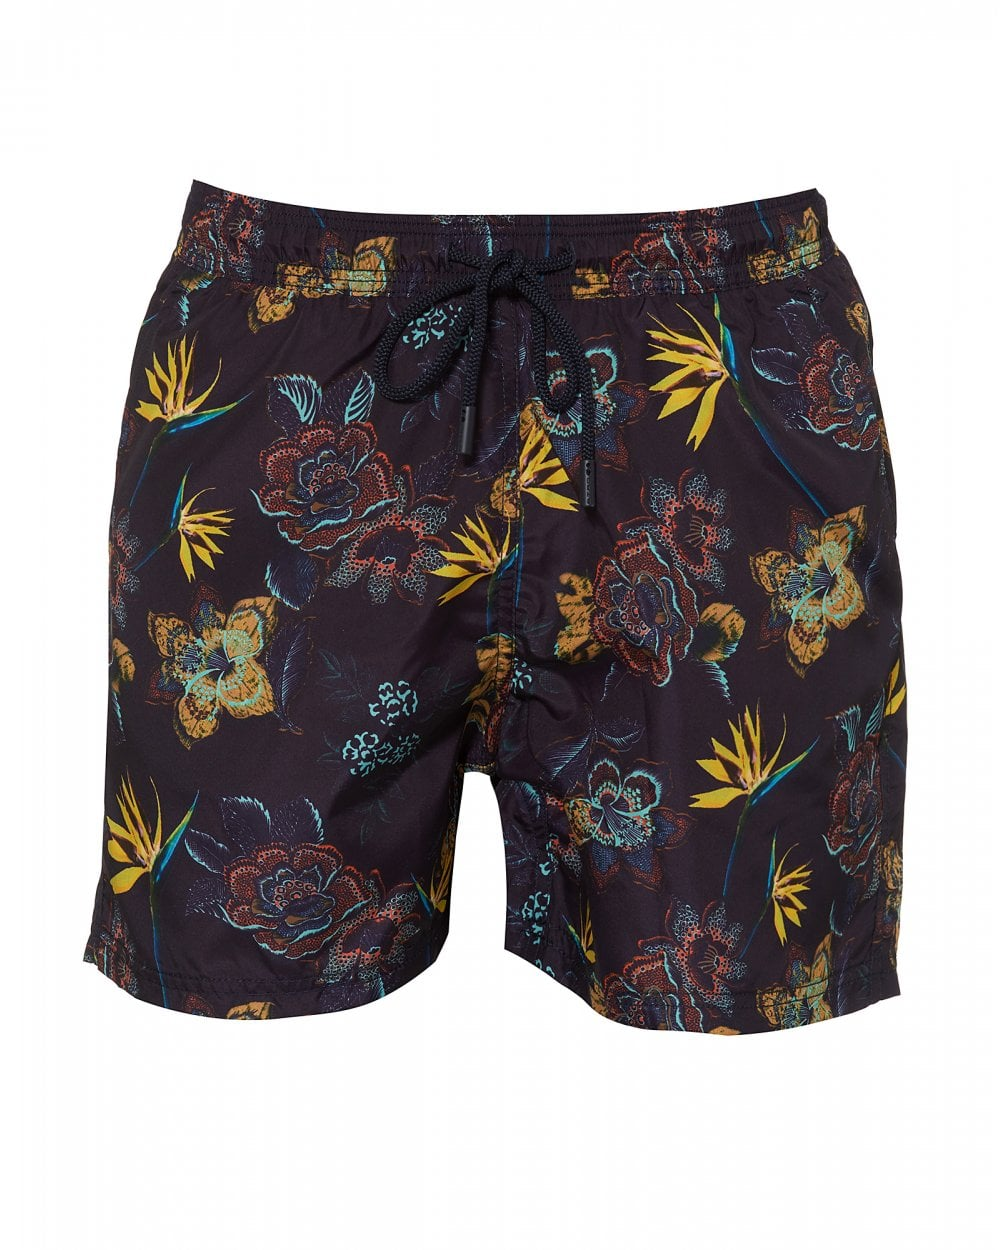 a2f5ce92e9 Etro Mens Blue Floral Print Swimshorts, Multicoloured Swimming Trunks